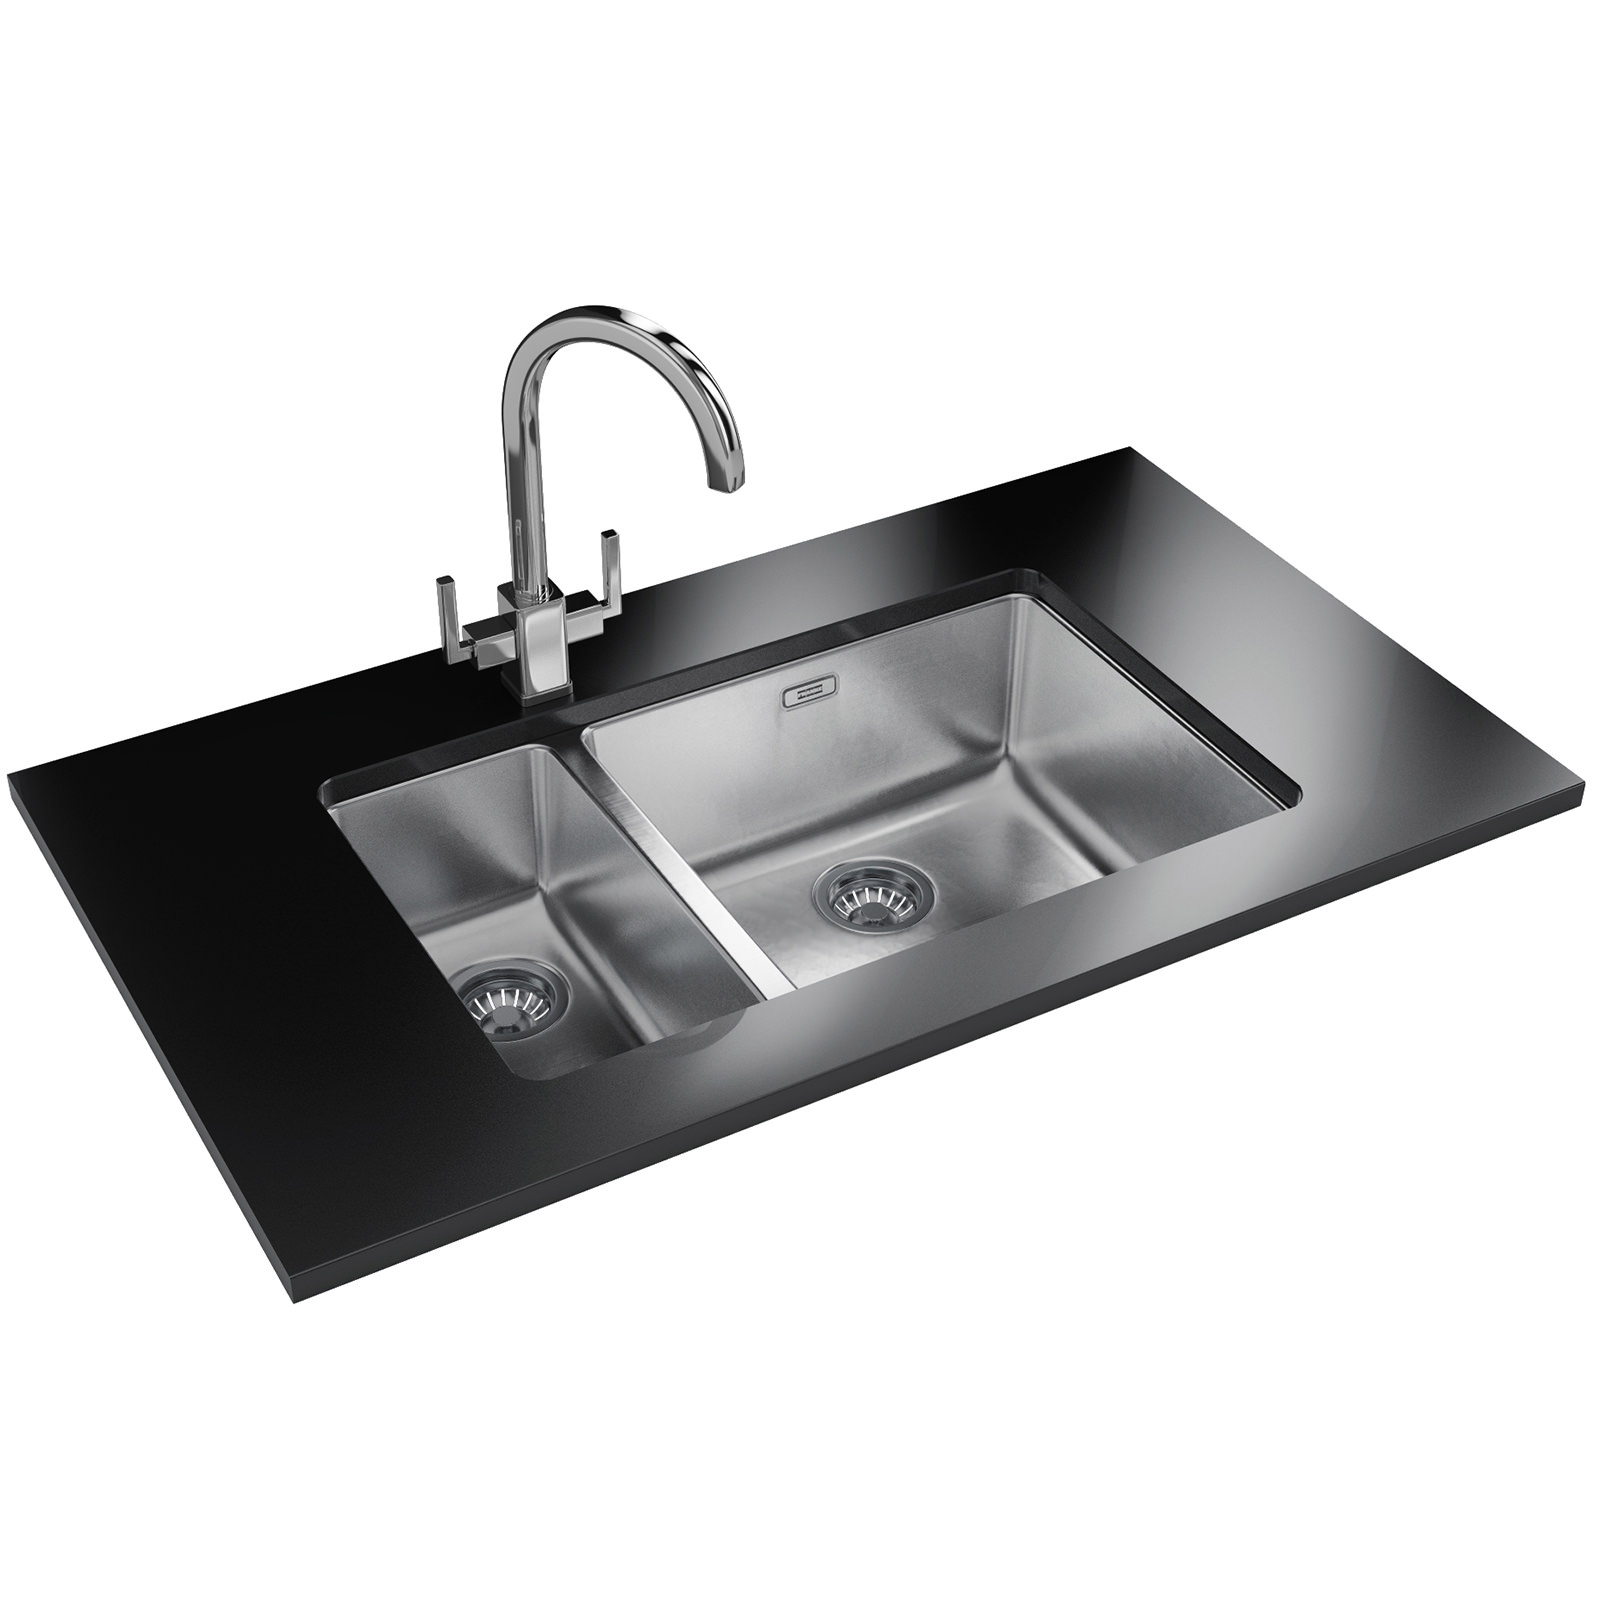 Franke kubus designer pack kbx 160 45 20 undermount sink for Designer stainless steel sinks